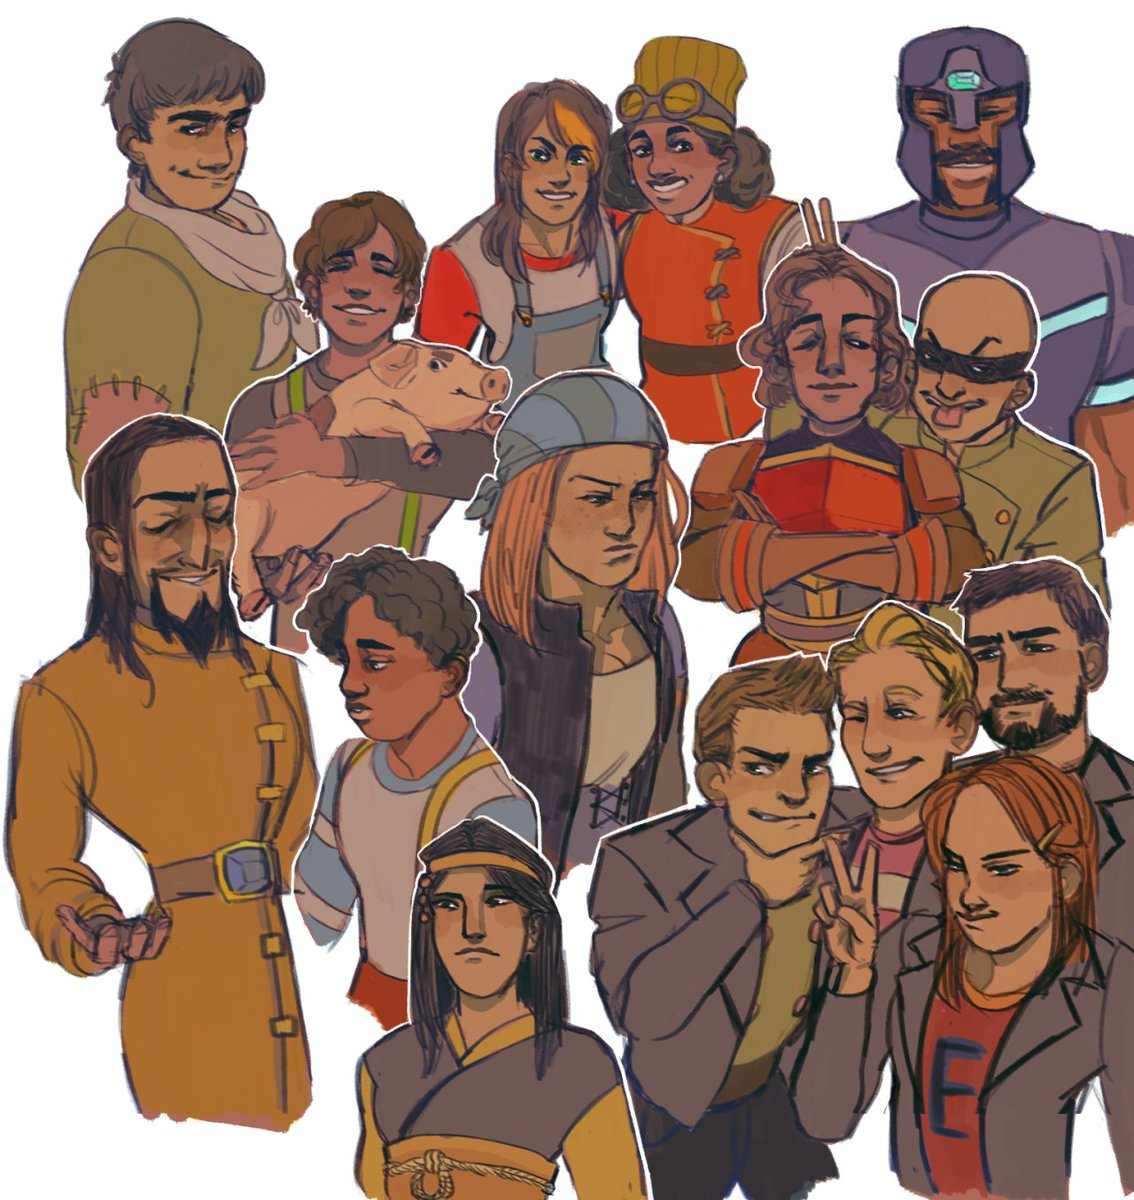 Telltale Games On Twitter The Minecraft Storymode Cast Brought To Life In This Awesome Art By Touwata On Tumblr Https T Co Dhucao9gor